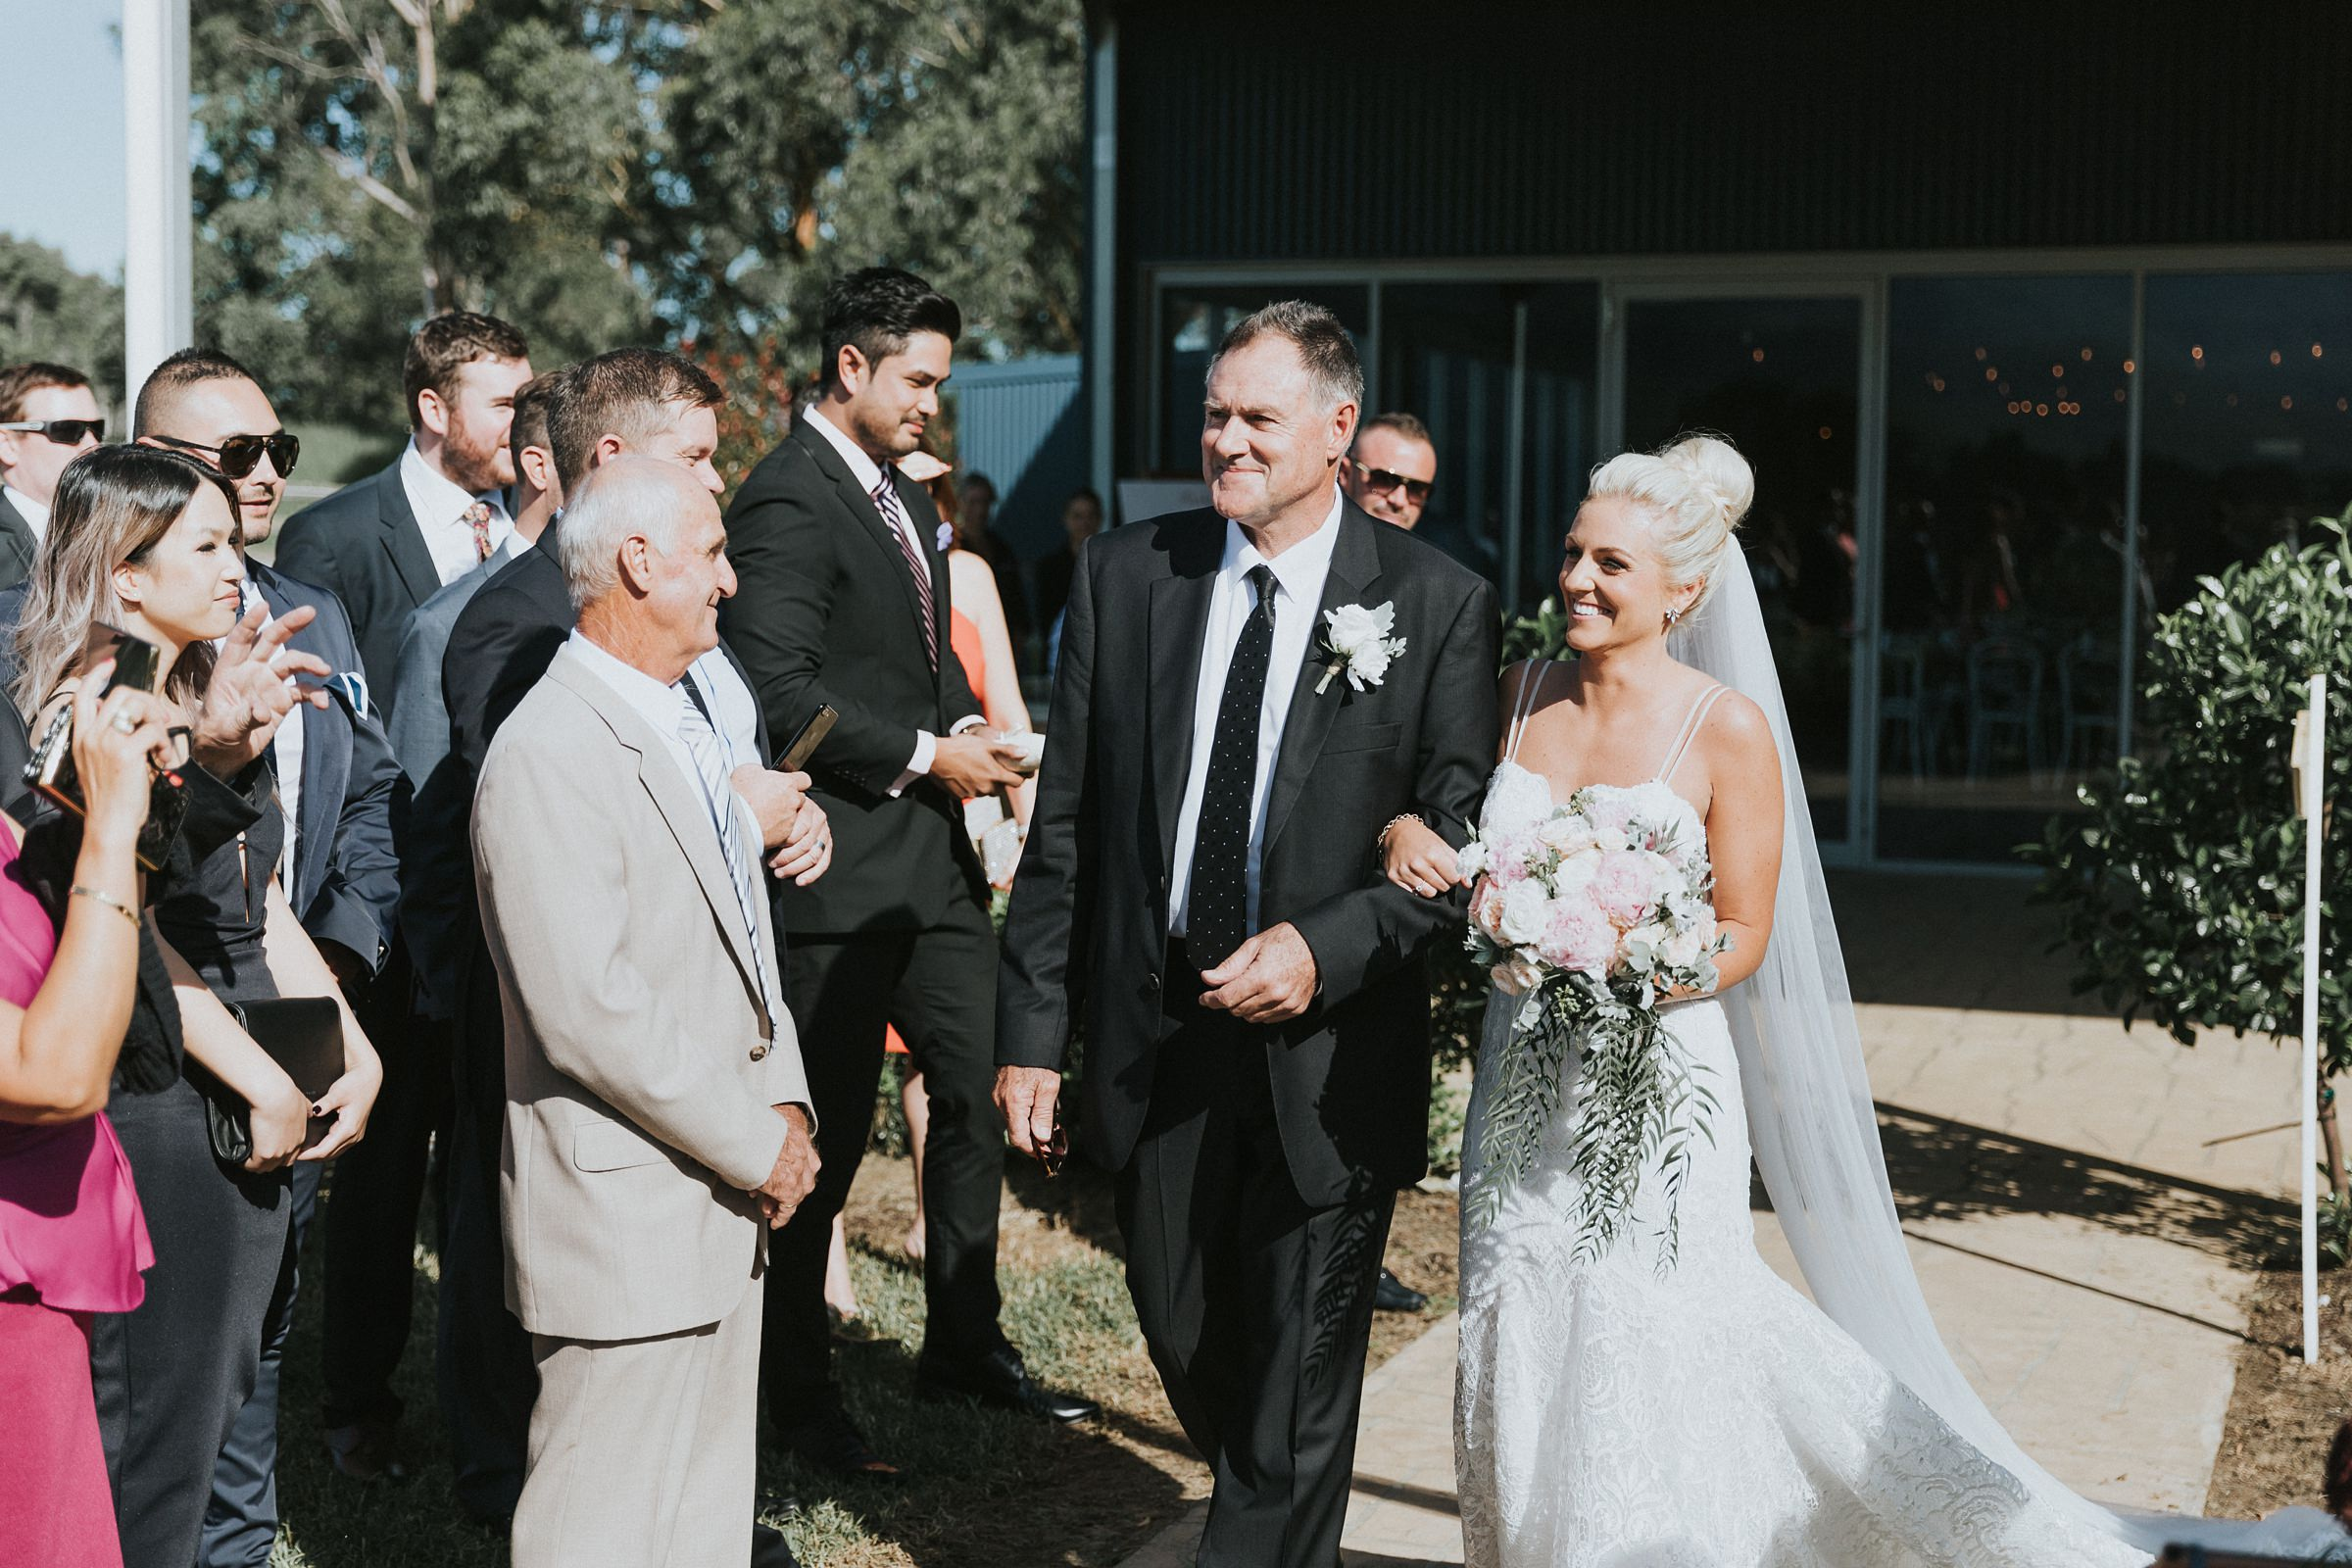 bride and bride's father walking down the wedding aisle at melross farm estate